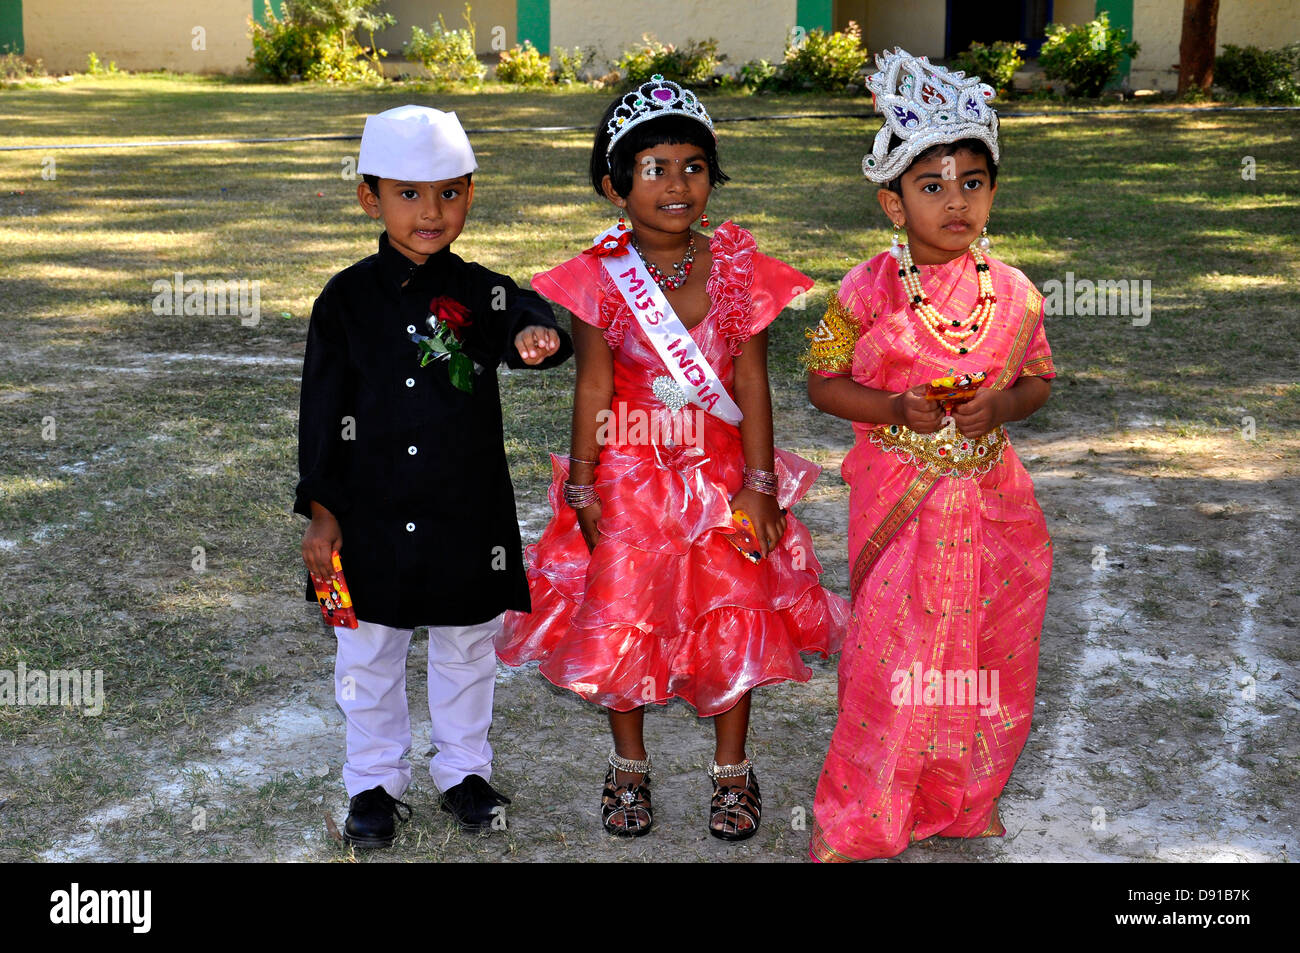 d17636279 Fancy Dress Competition India Stock Photos   Fancy Dress Competition ...